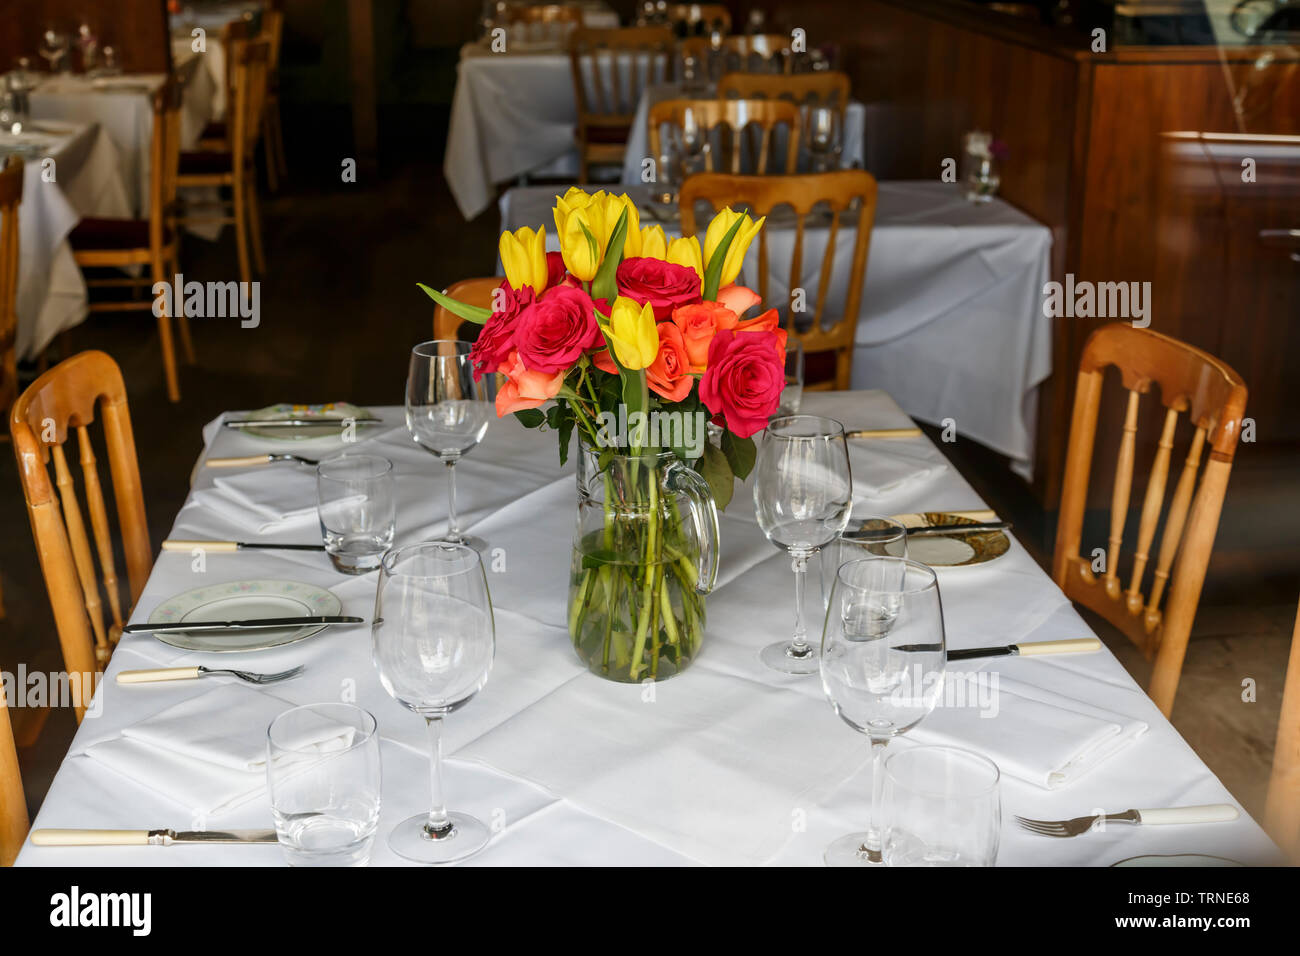 Flowers on a table in the twofatladies restaurant on Blythswood Street in Glasgow city centre, Scotland, UK - Stock Image